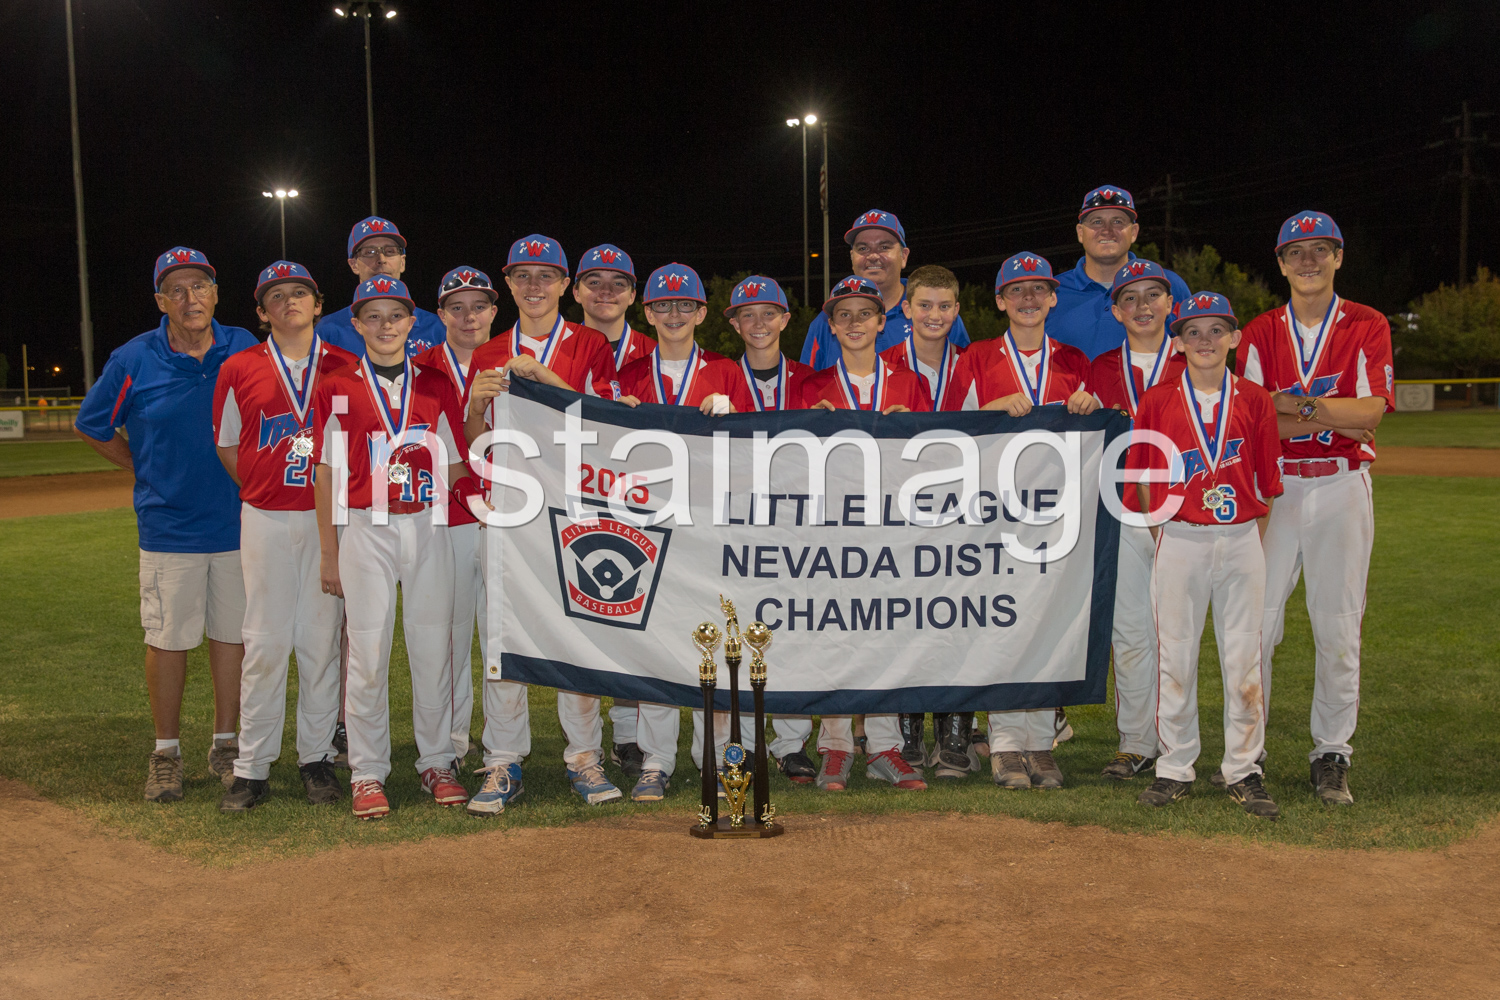 Washoe Little League All Star Champions